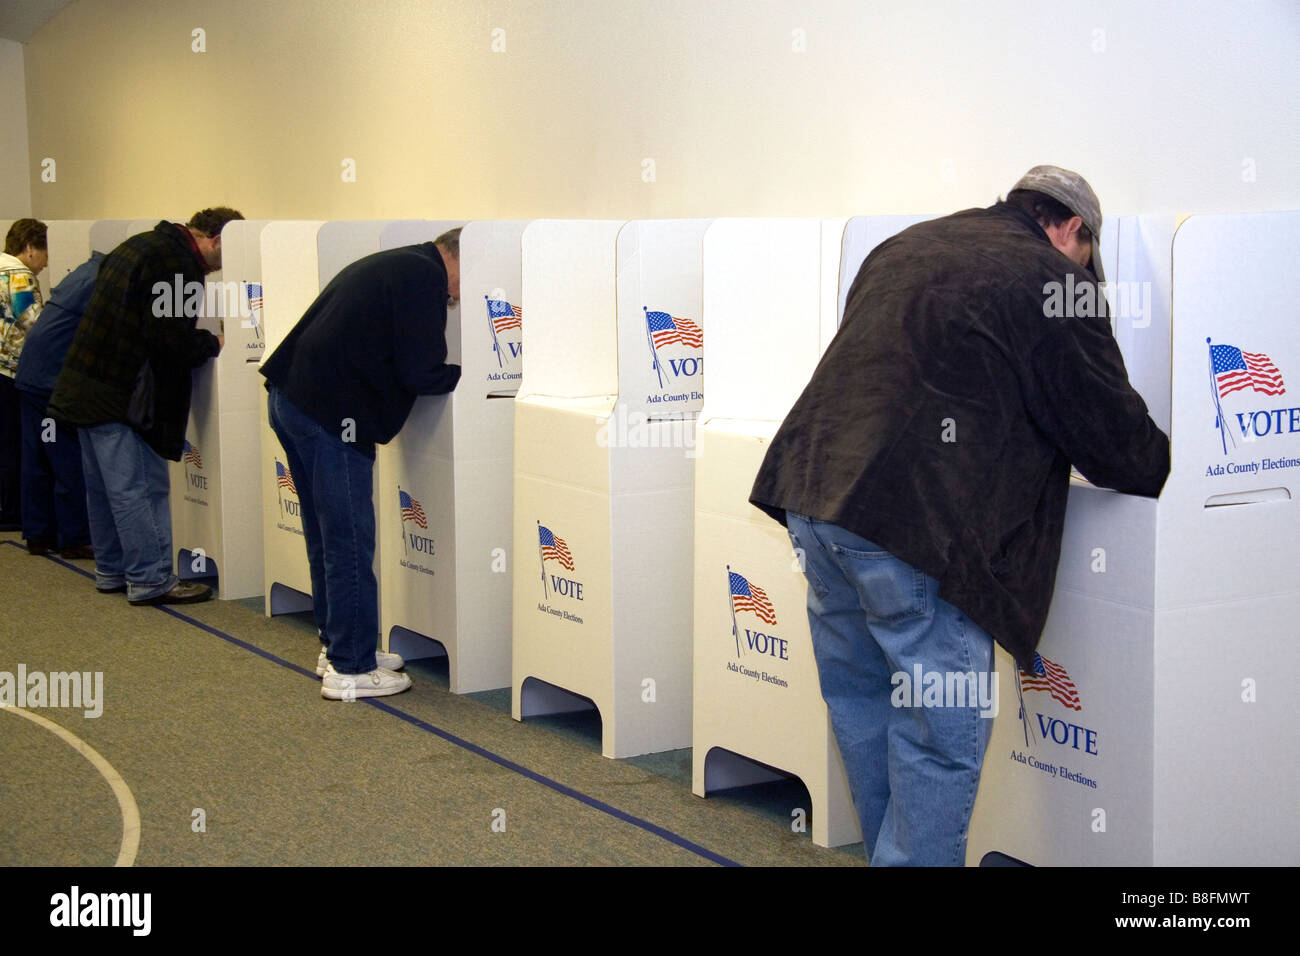 Voting in cardboard voting booths at a polling station in Boise Idaho USA - Stock Image